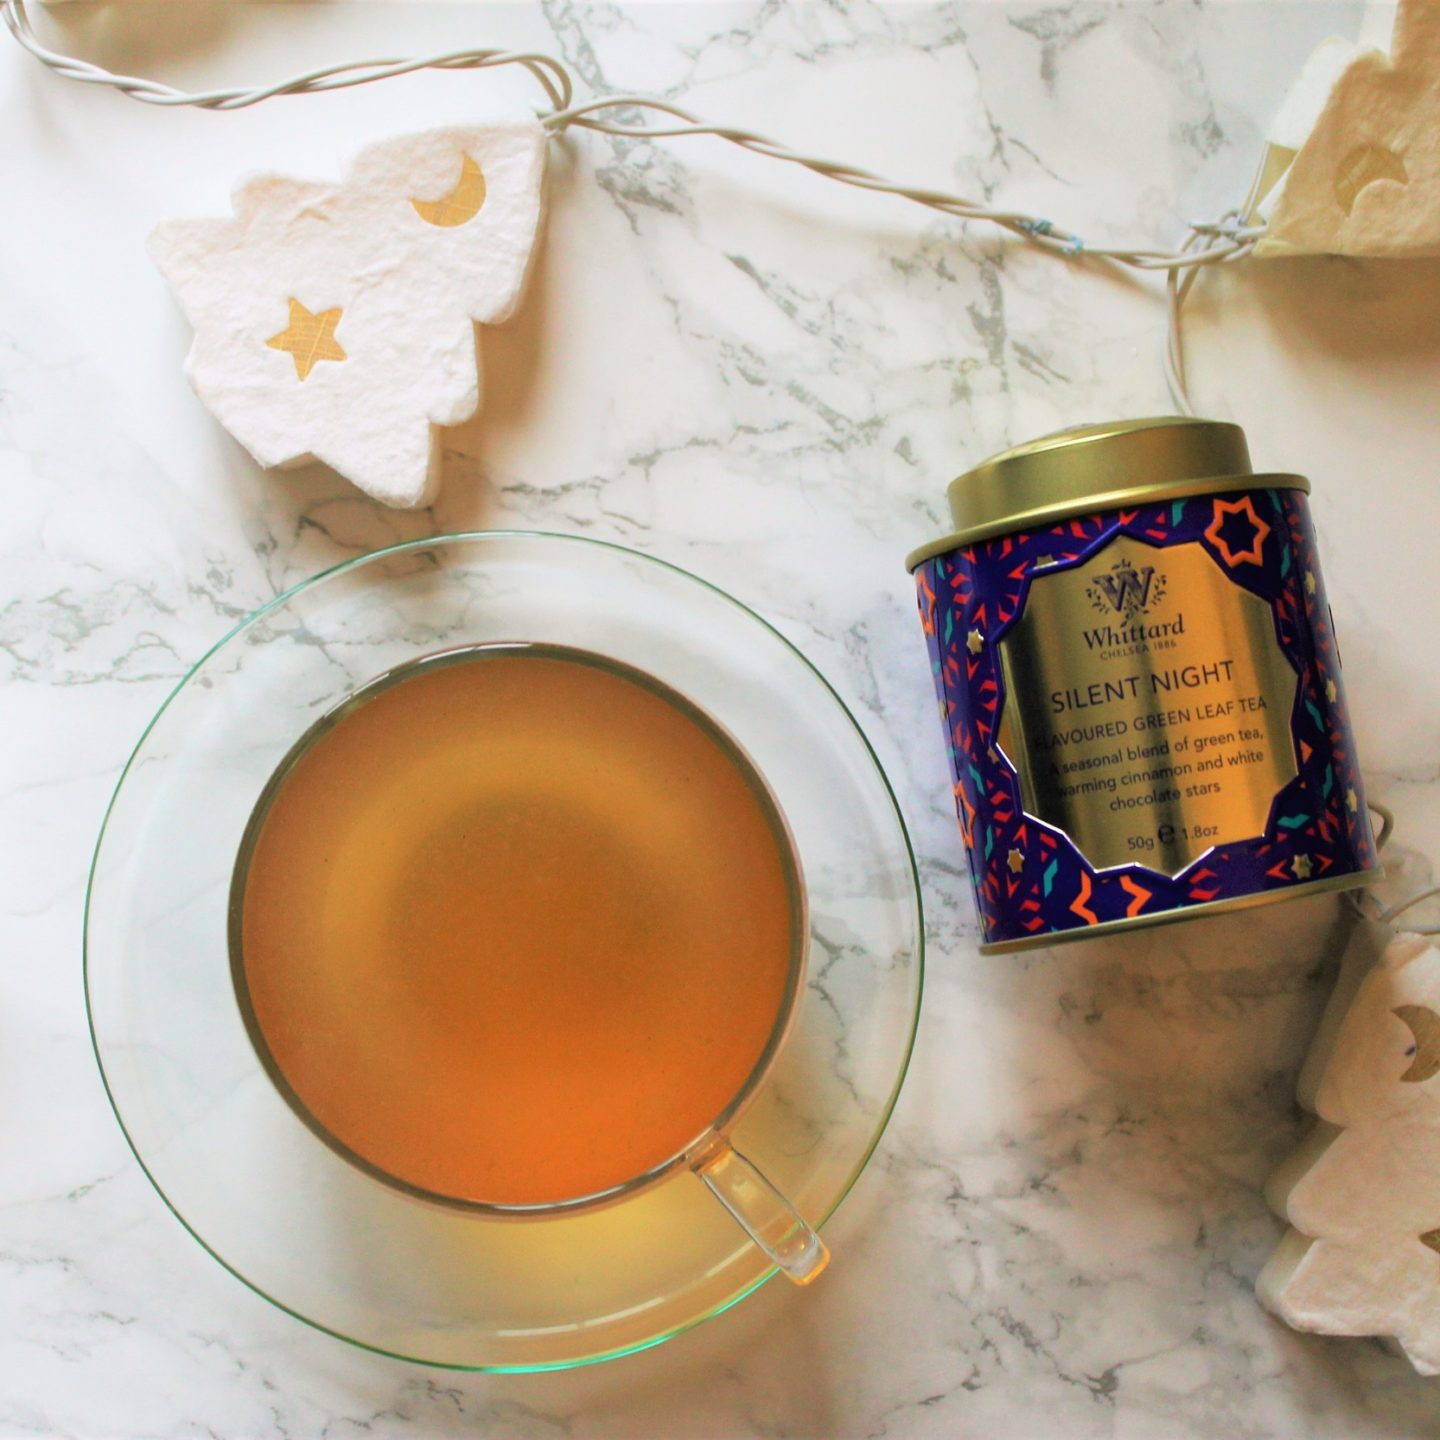 Whittard Silent Night Tea Review